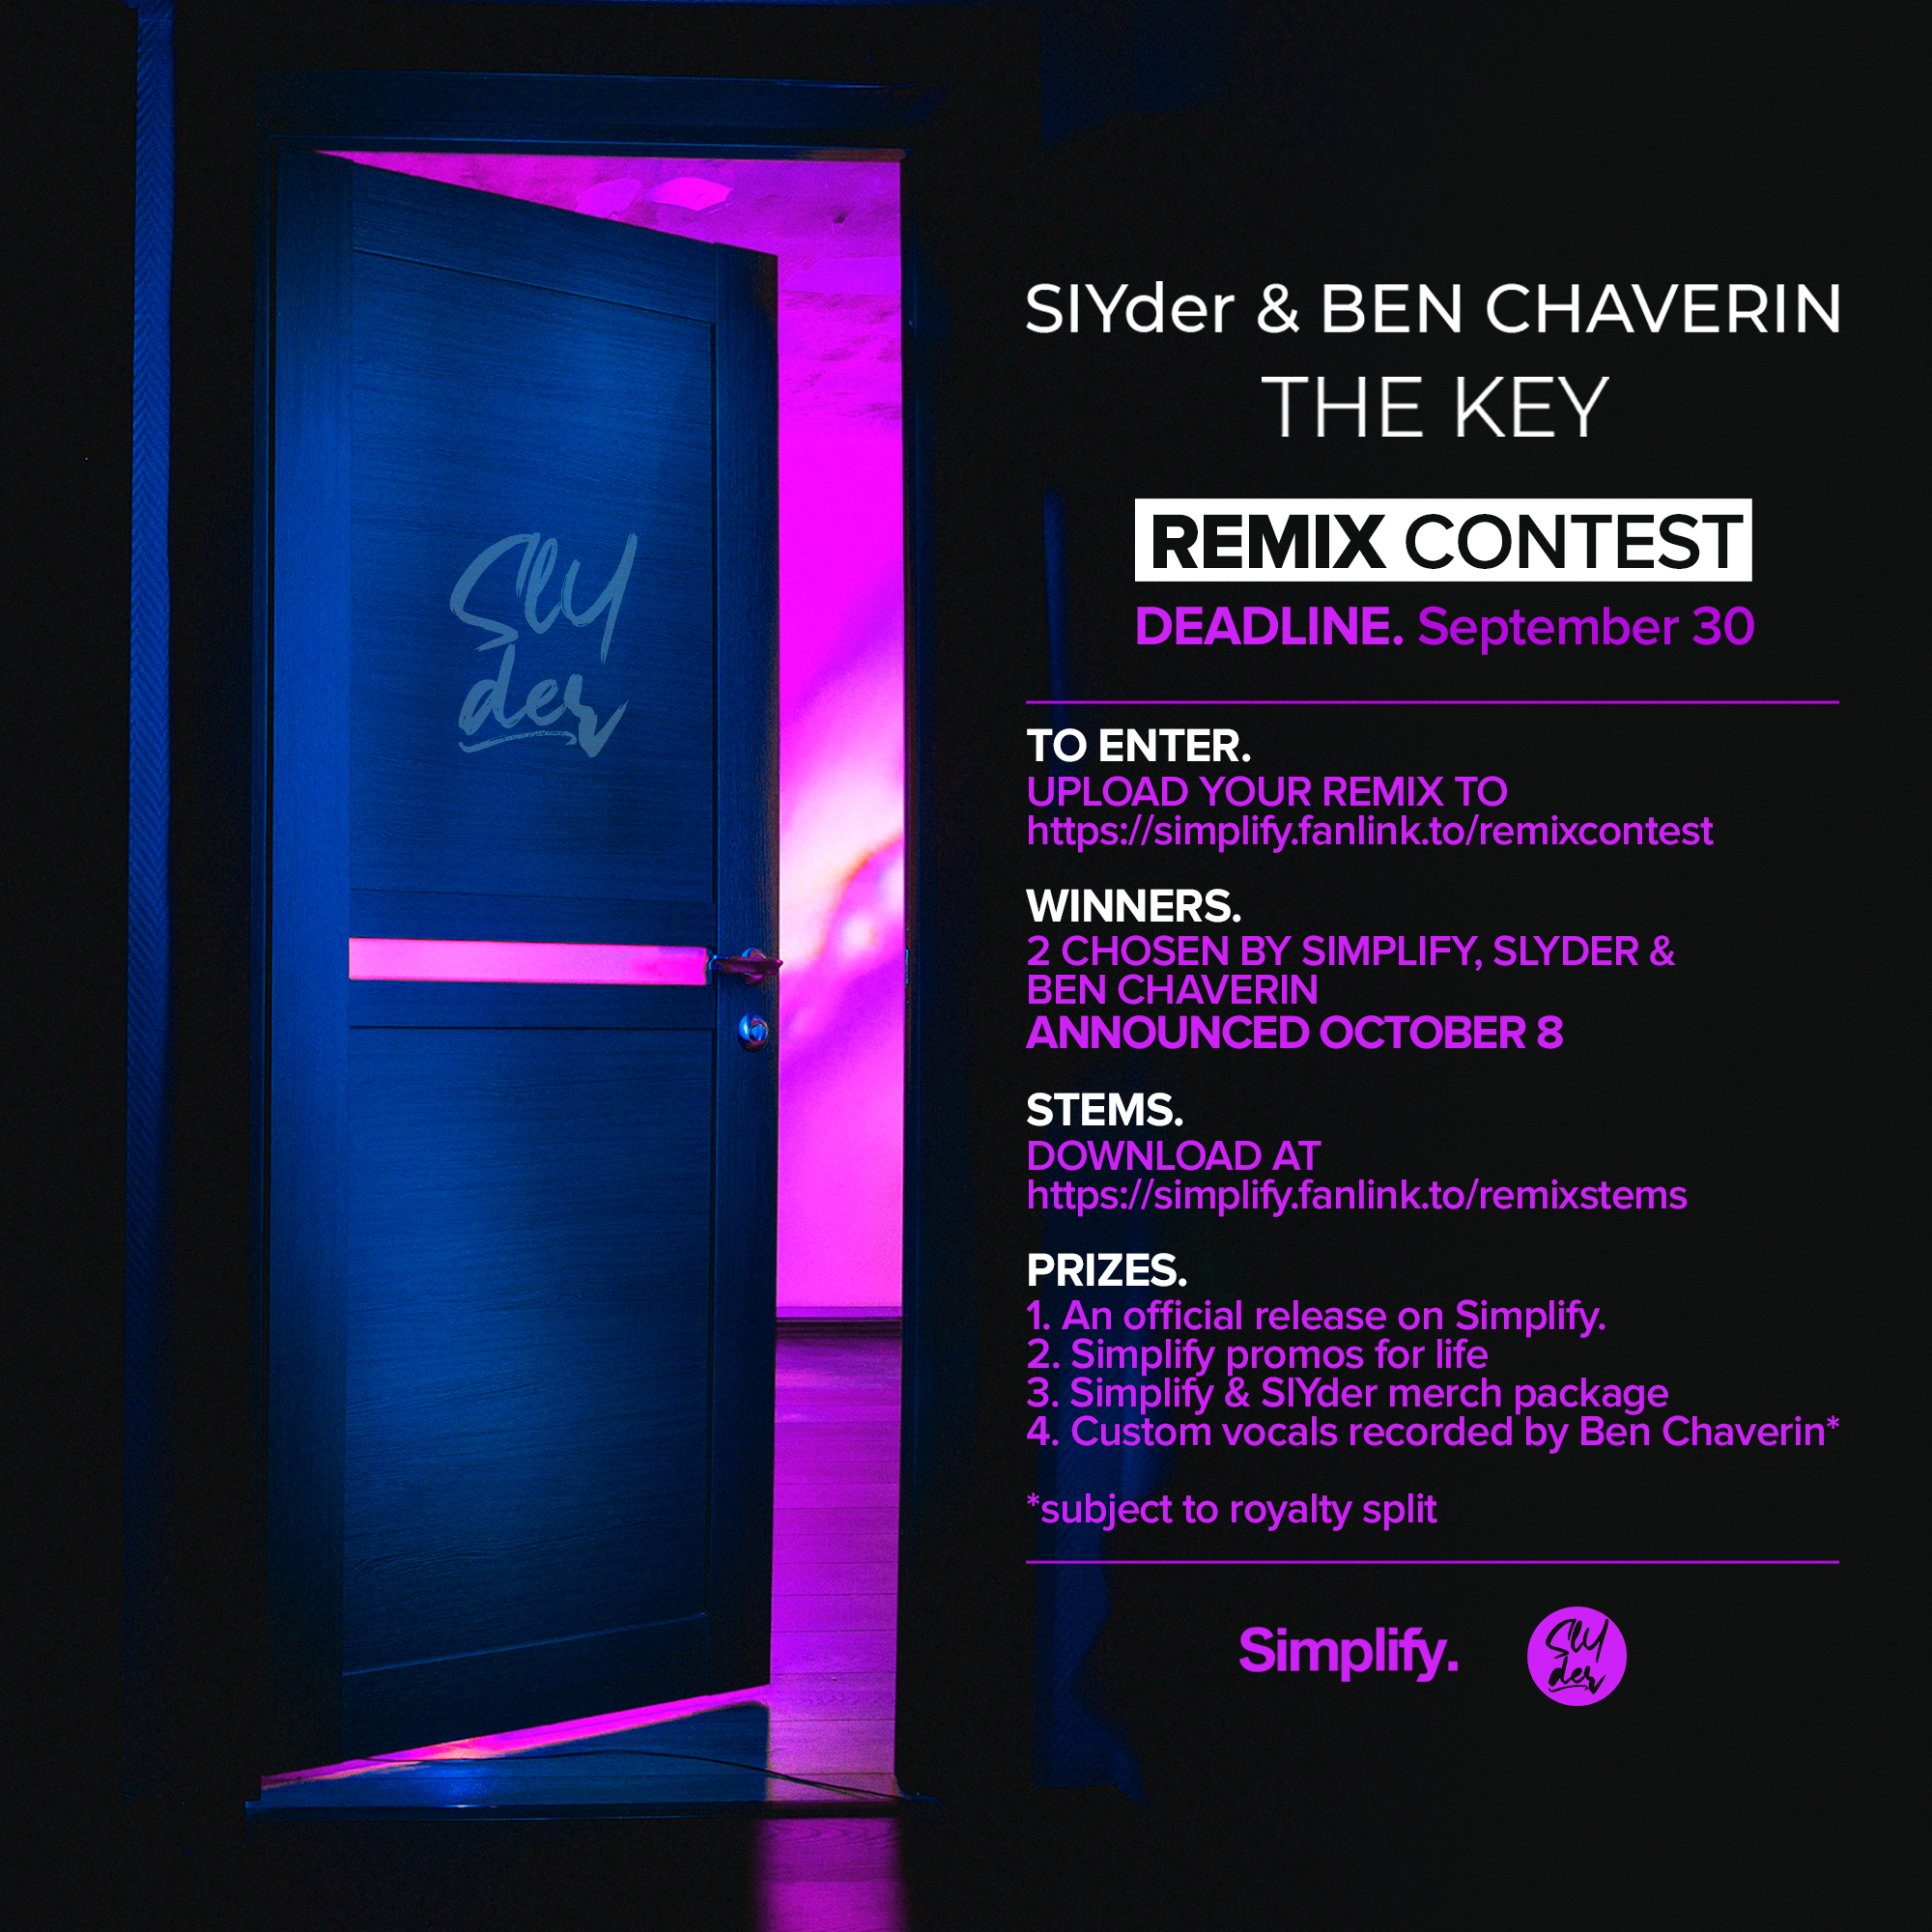 """SlYder & Ben Chaverin - """"The Key"""" Remix Contest by Simplify Records"""